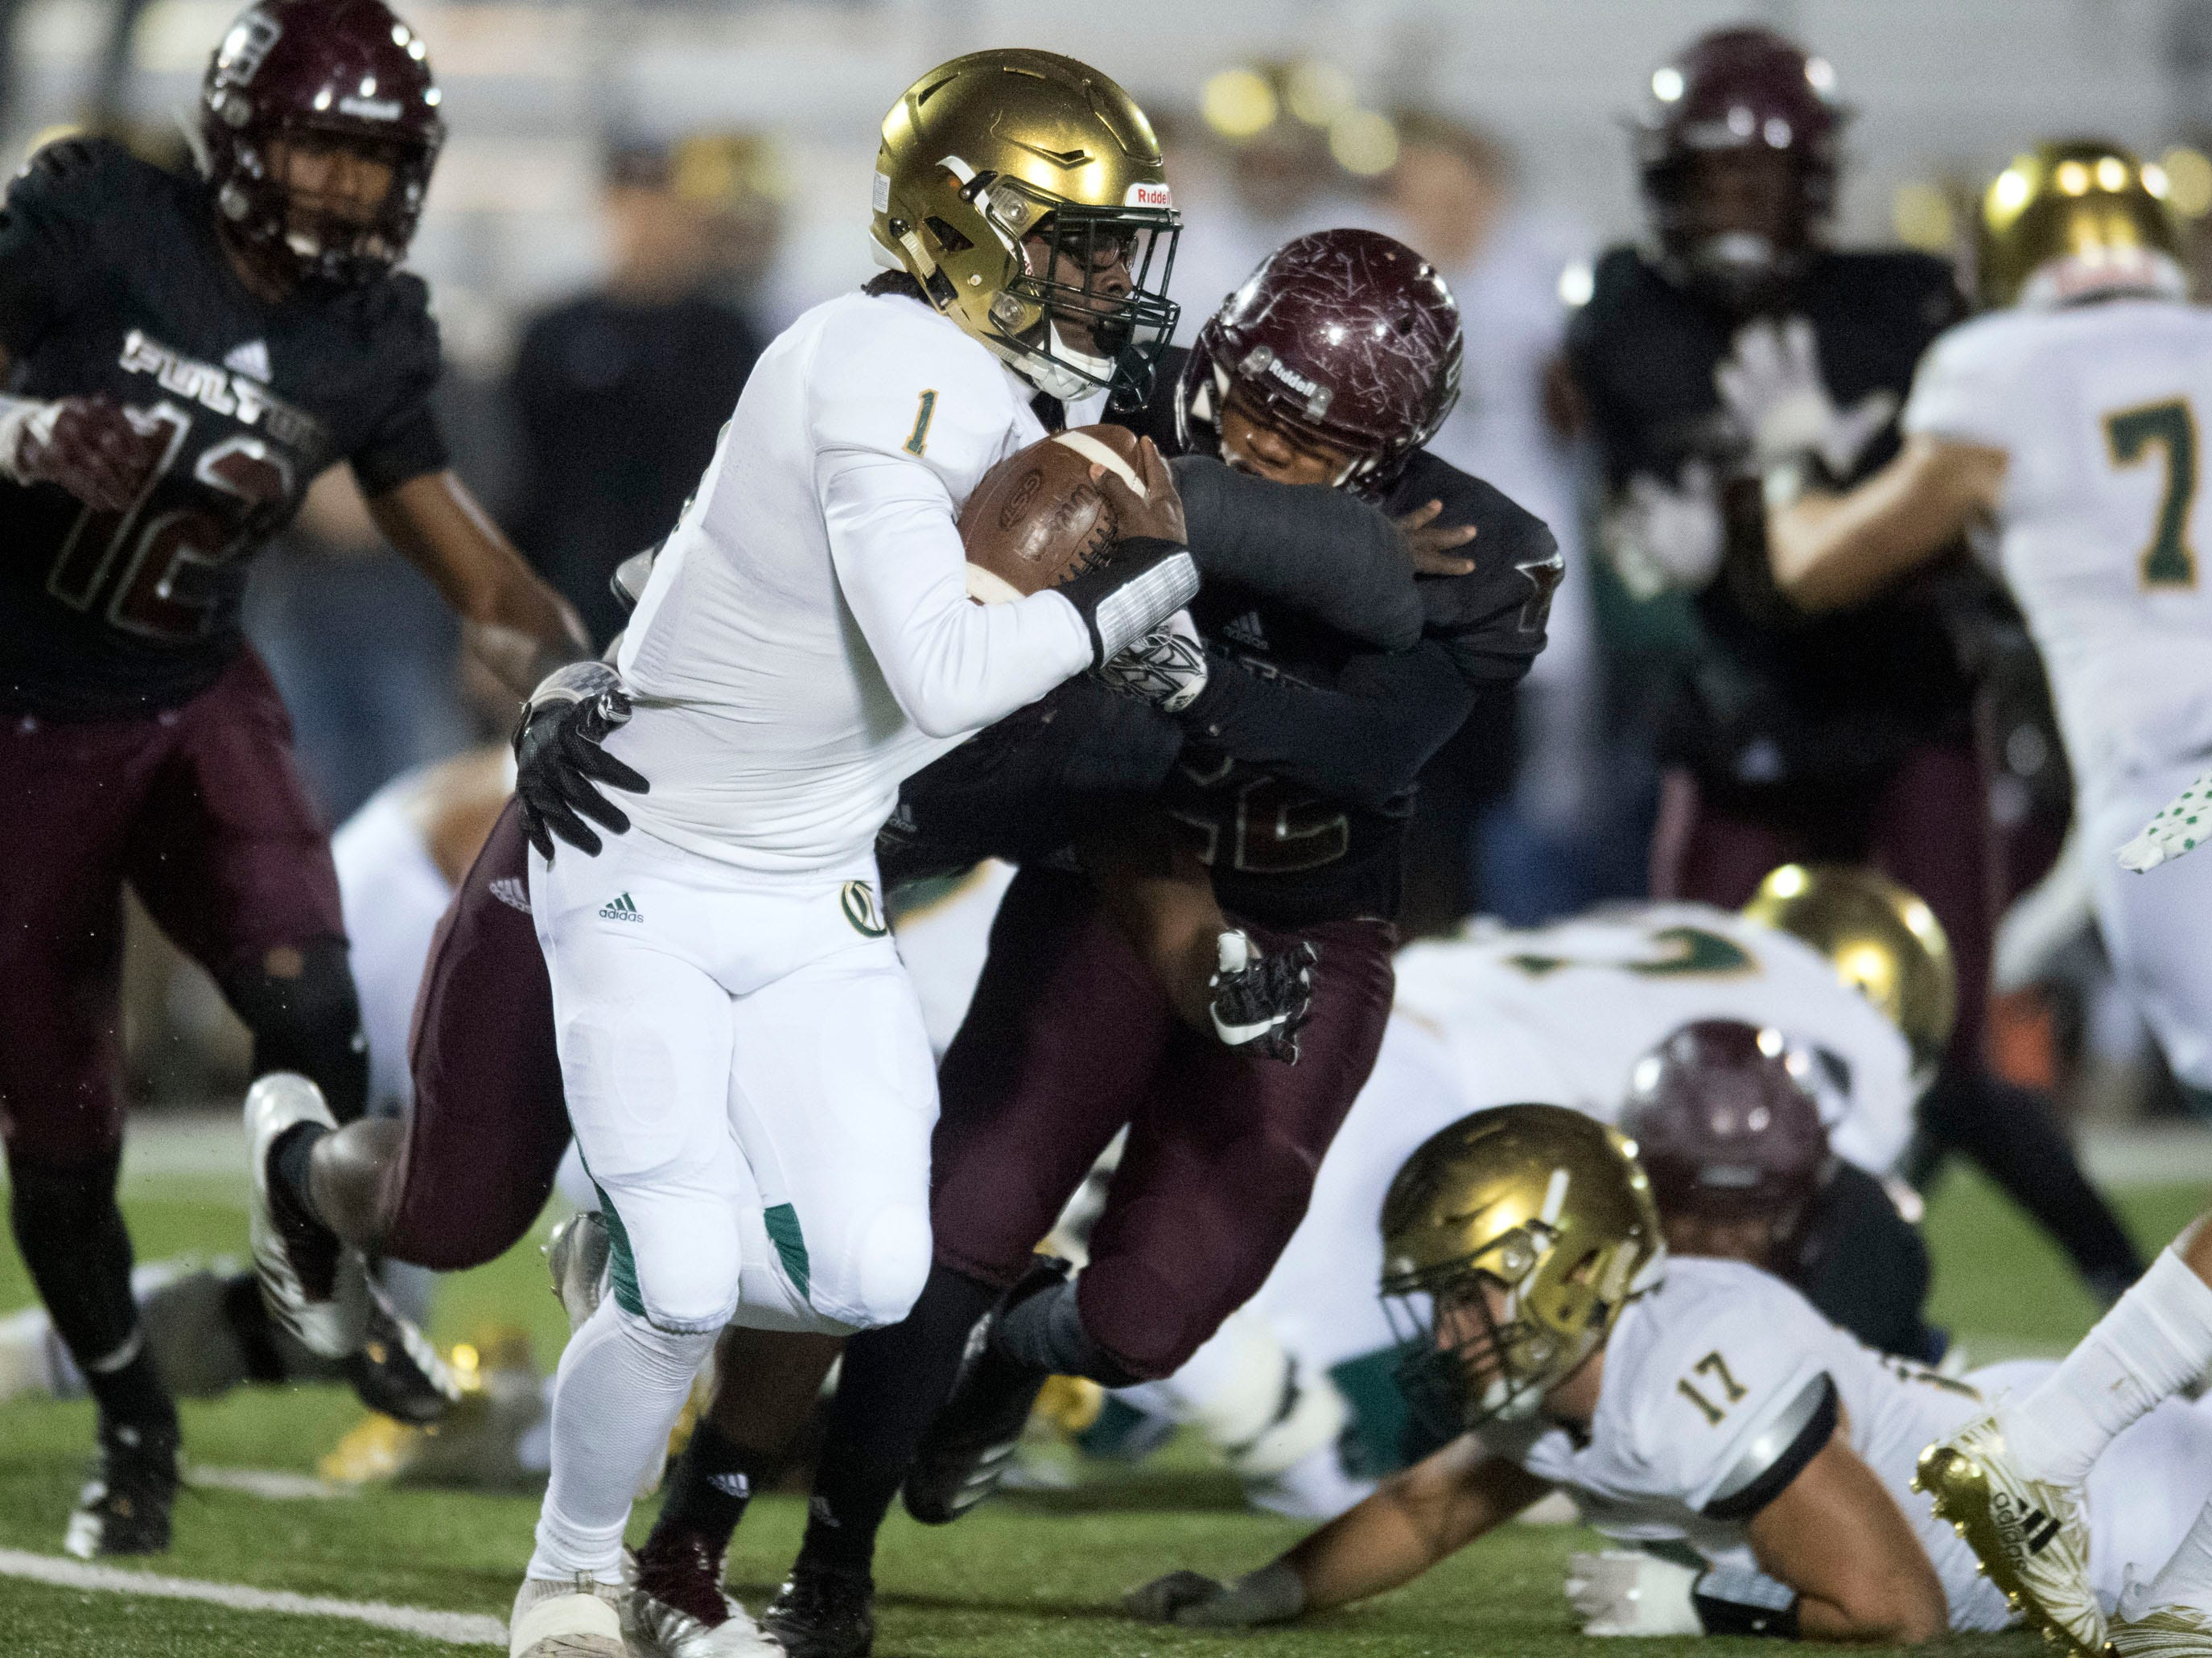 Knoxville Catholic's Keondre' Jarmon (1) is grabbed by Fulton's Terrence Brown (22). Knoxville Catholic beat Fulton, 28-25 in the second round of the Class 5A playoffs on Friday, November 9, 2018.